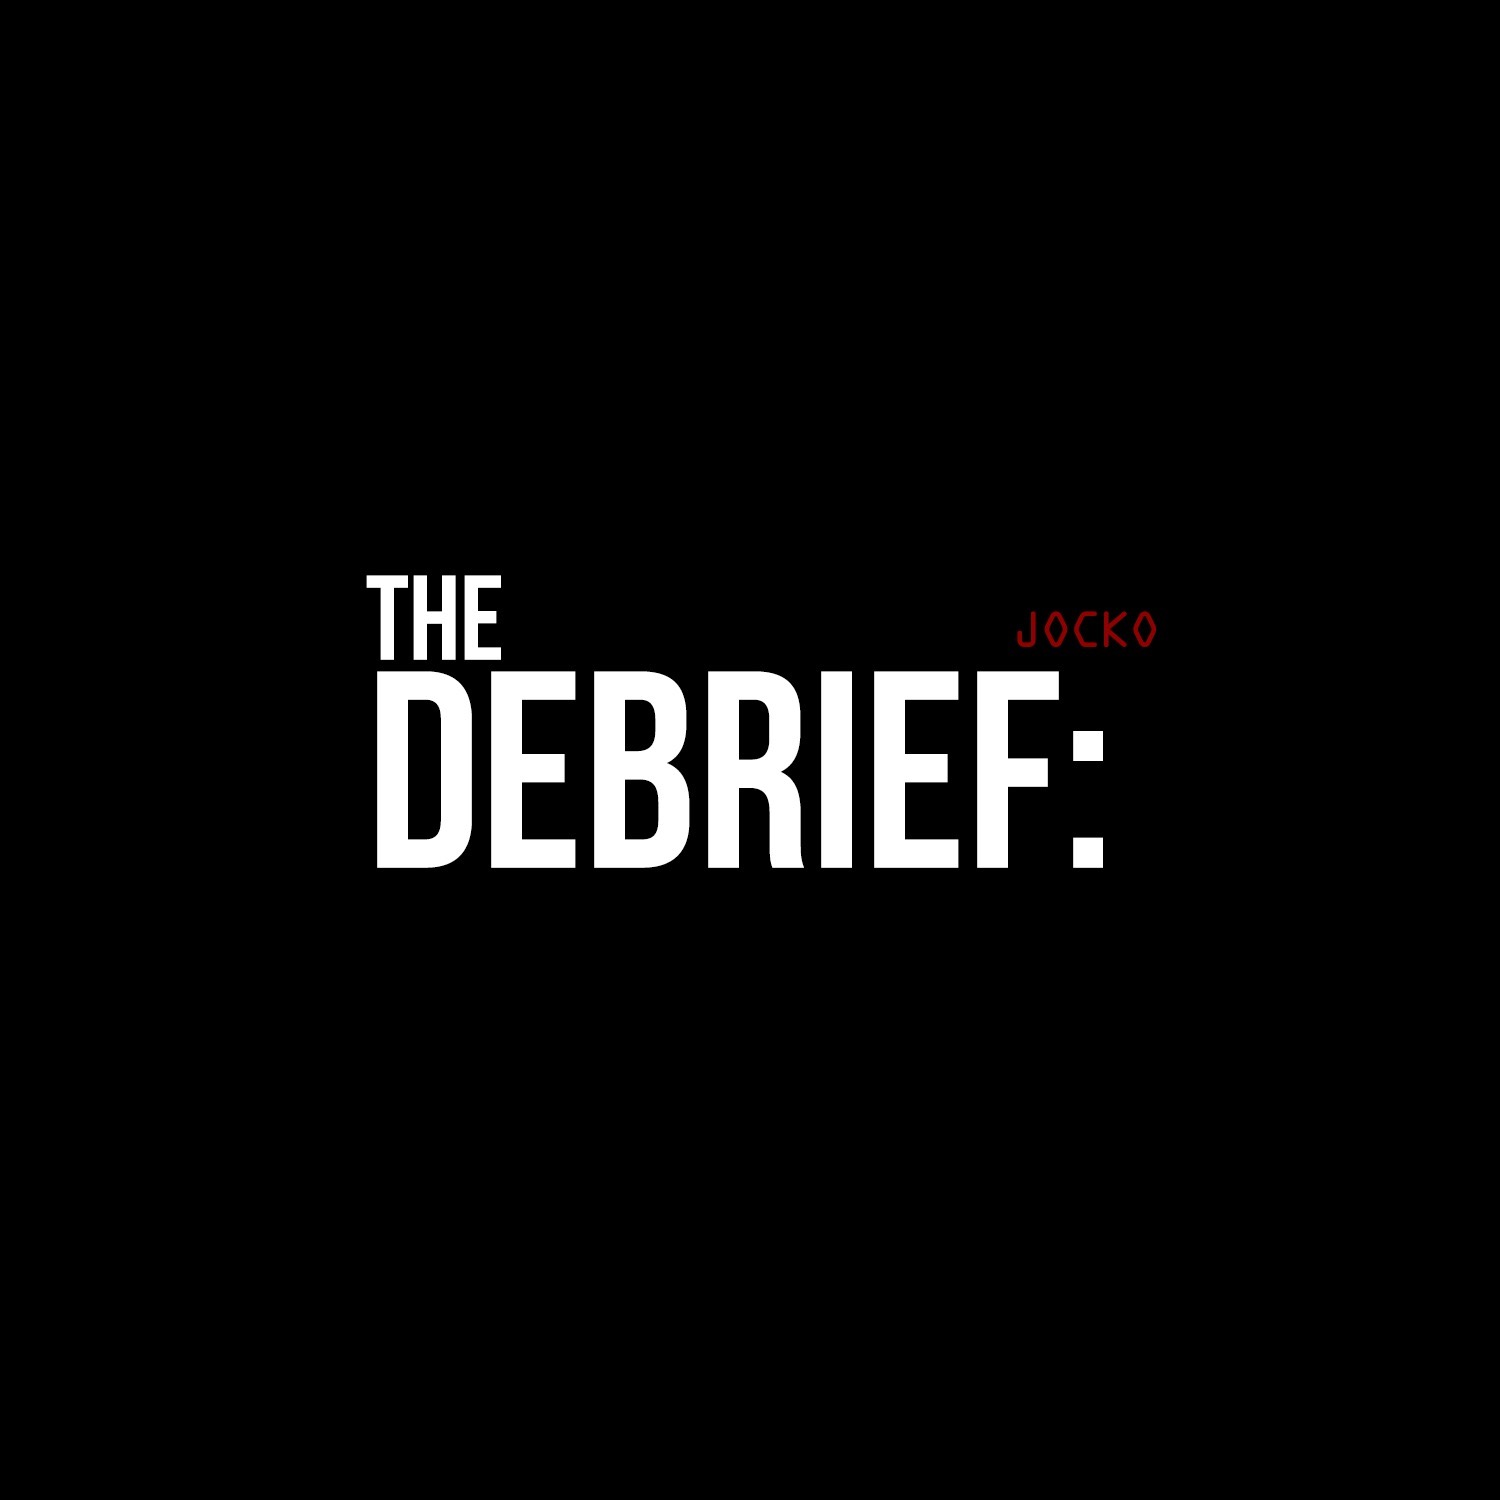 The Debrief w/ Jocko and Dave Berke #15: Bridging the Gap Between The Front Lines and The Top Leaders